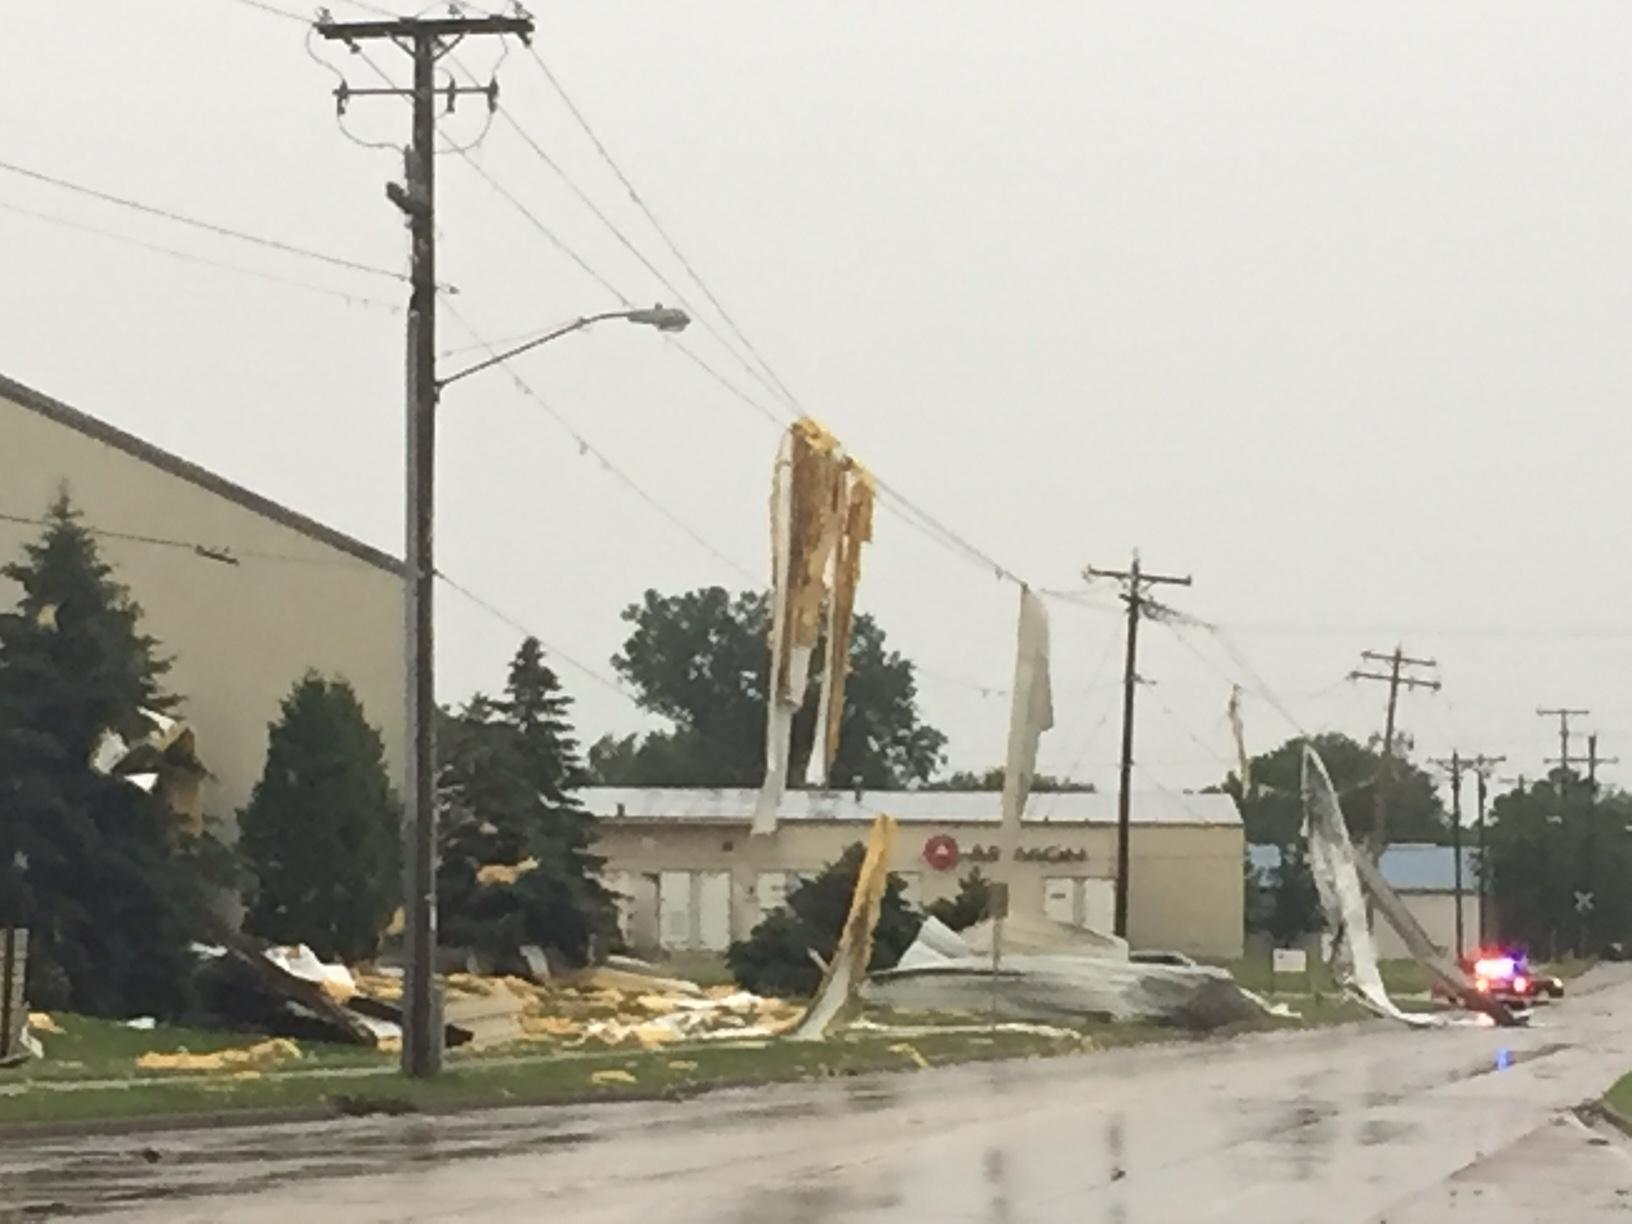 Appvion warehouse storm damage in Appleton, June 14, 2017. (WLUK/Alex Ronallo)